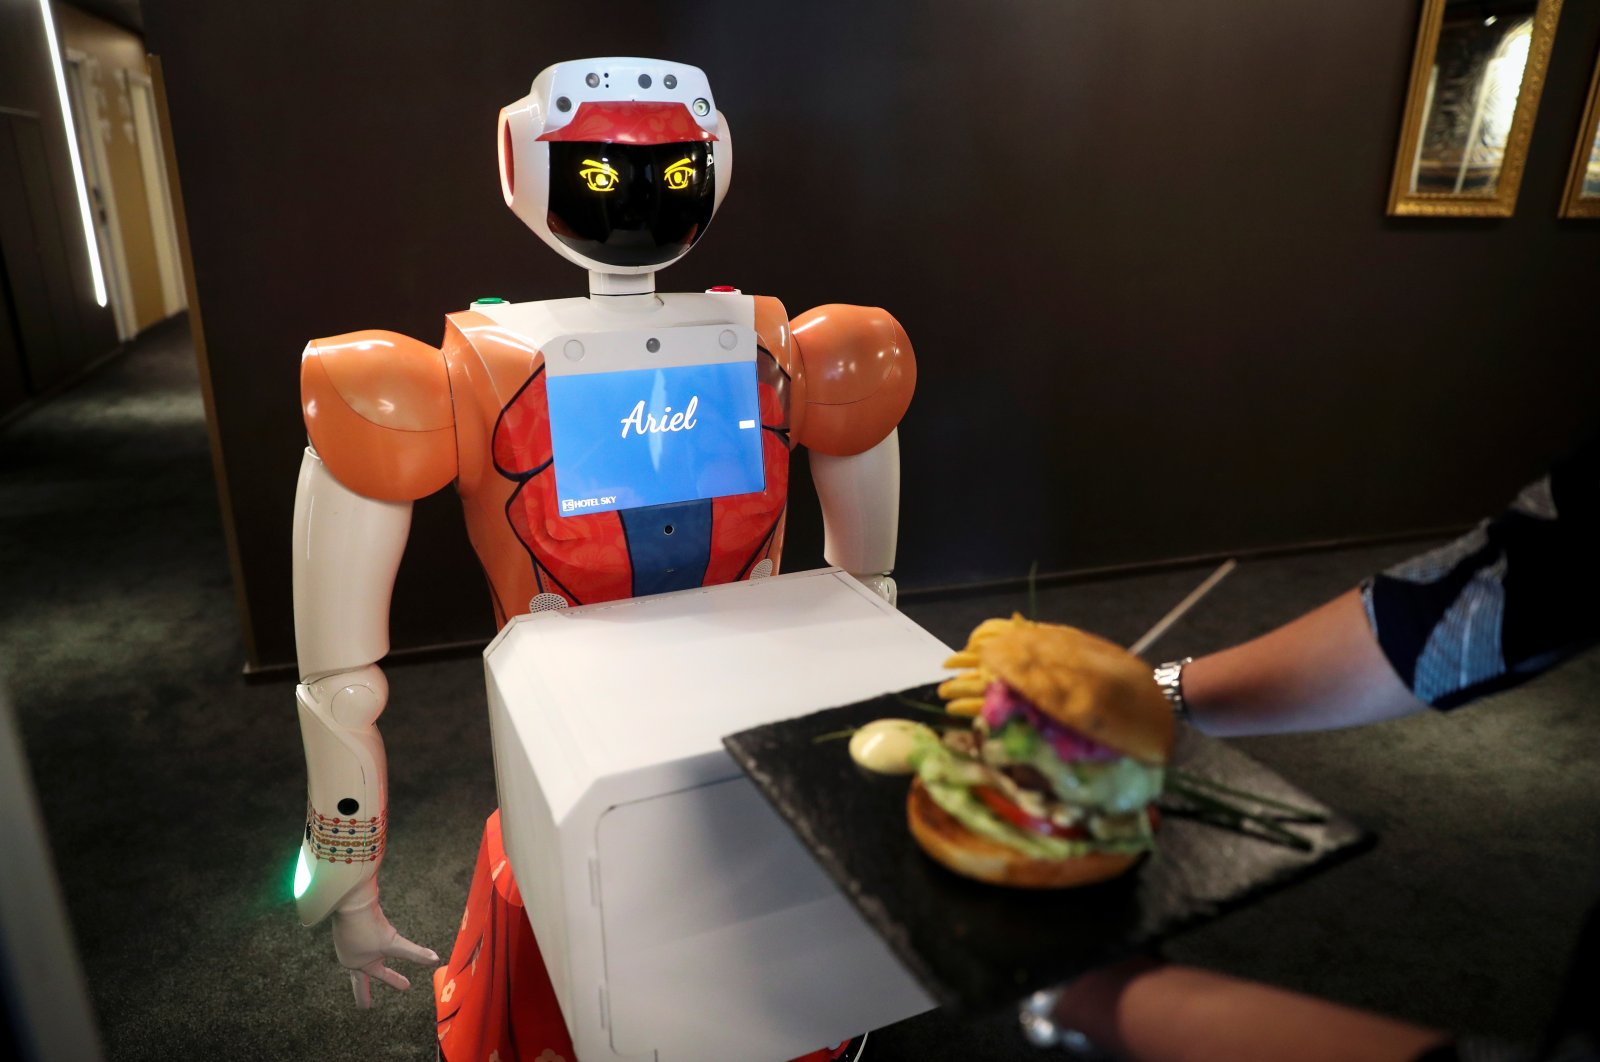 AI-powered robot Ariel delivers room service to a guest at Hotel Sky, the first in Africa to use automated attendants, in Johannesburg, South Africa, Feb. 9, 2021. (Reuters Photo)